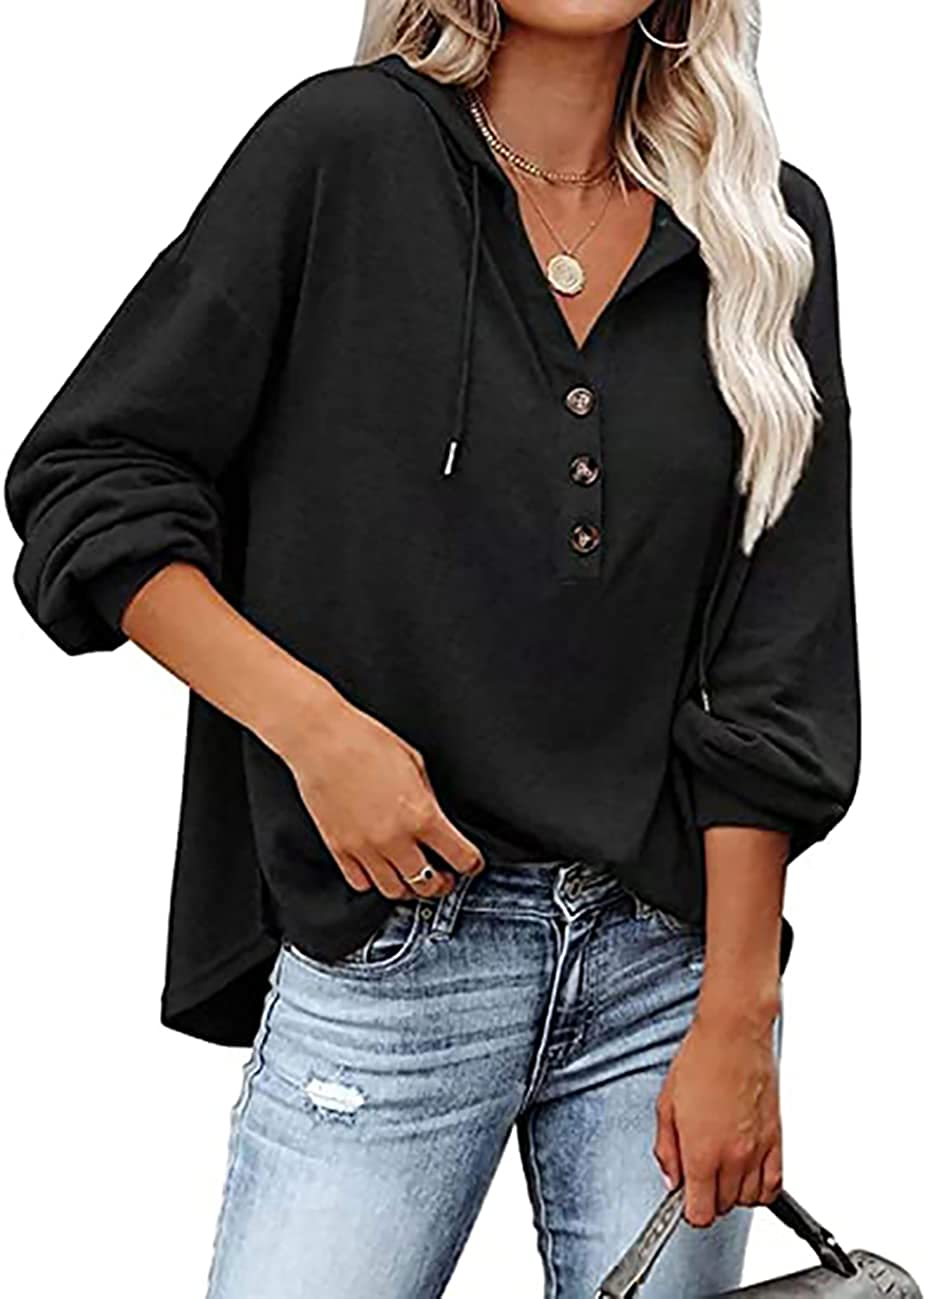 MAYFASEY Women's Sexy Deep V Neck Henley Shirts Long Sleeve Button Down Sweatshirts Hoodies Pullover Tops with Drawstring